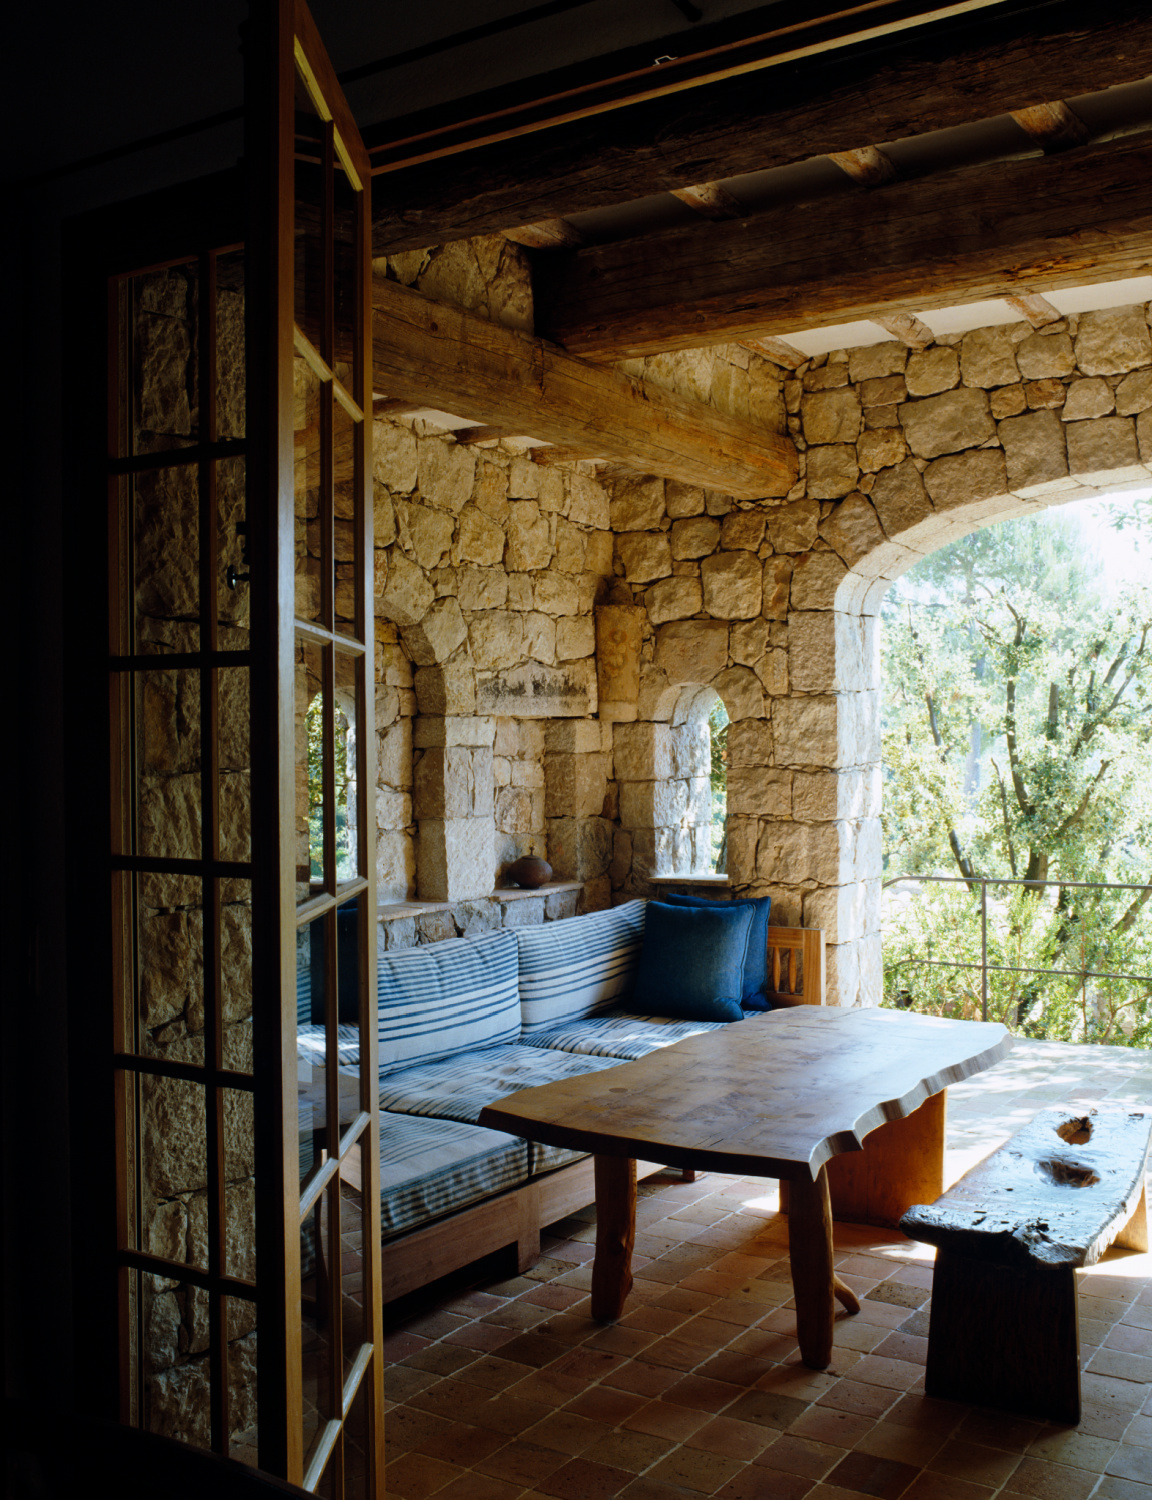 Rugged stone walls and patina-ed beams and arch details comprise a Provence outdoor living area with rustic furnishings. Featured in Shauna Varvel's PROVENCE STYLE. #interiordesign #frenchcountry #oldworldstyle